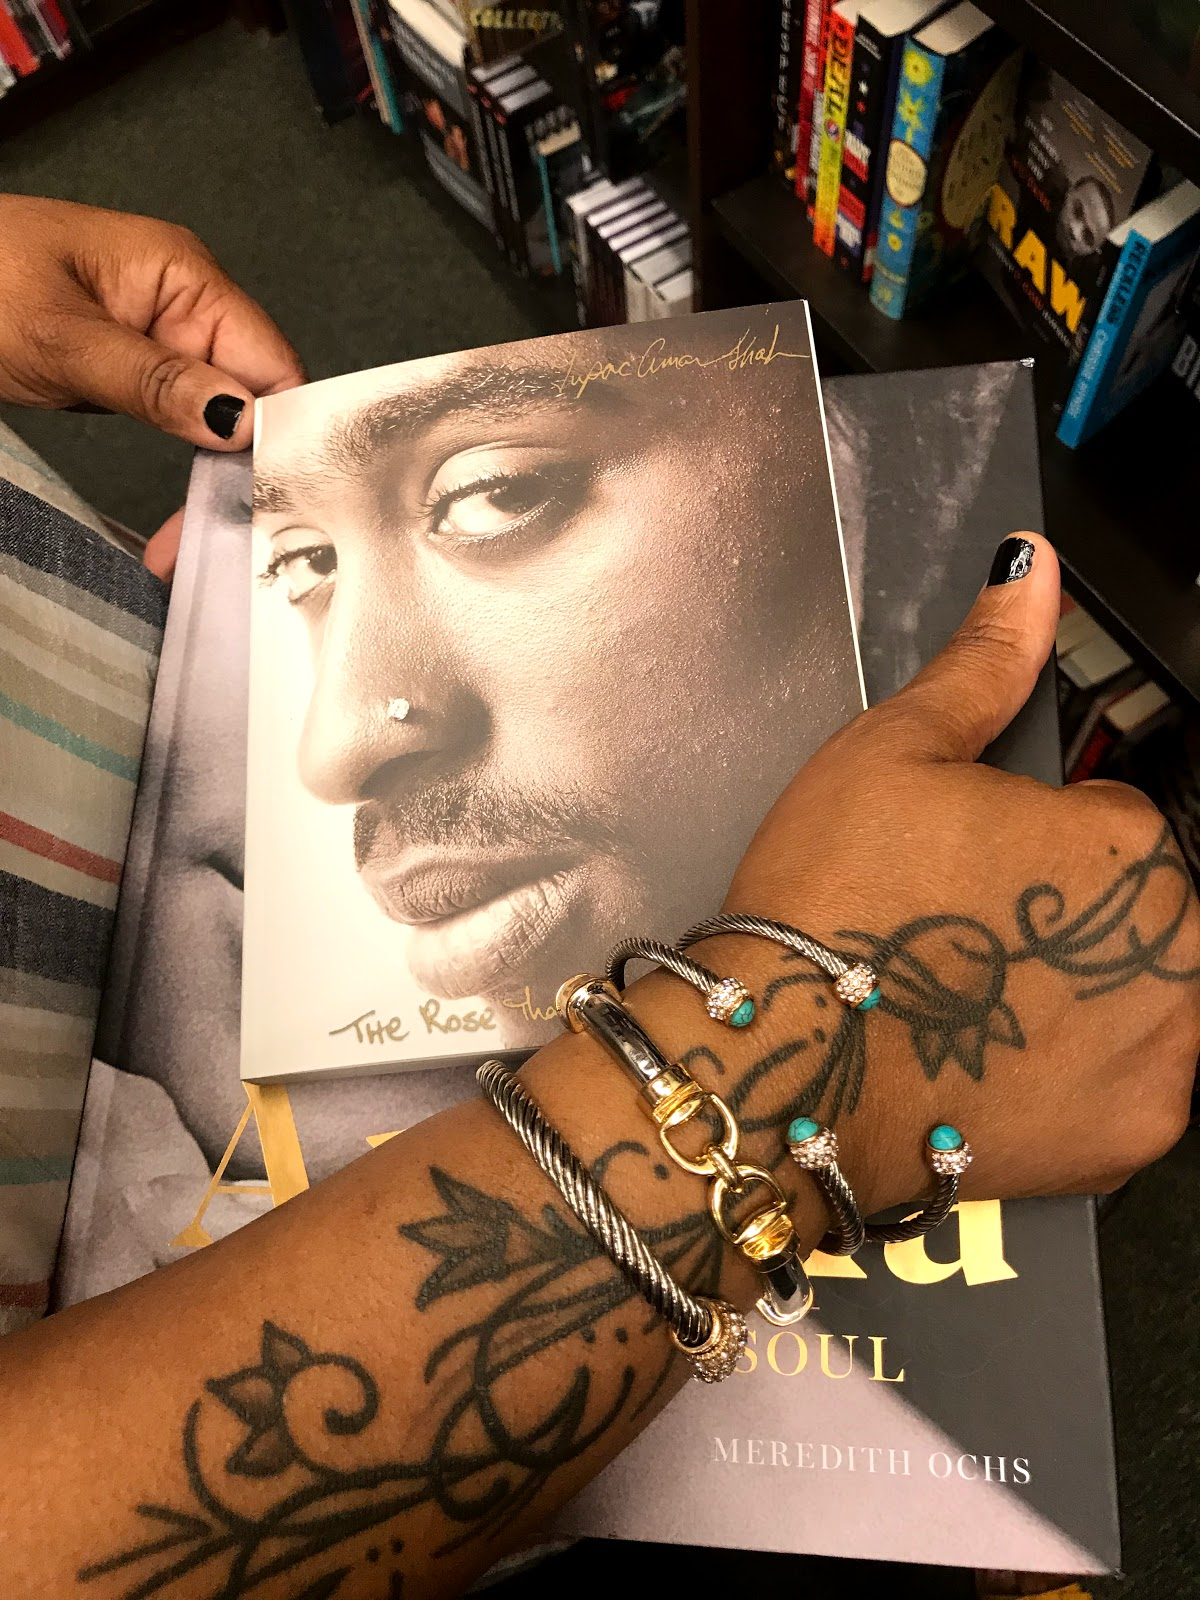 Image: Woman holding books with Tupac face on it at the library. Seen first on Bits and Babbles Blog